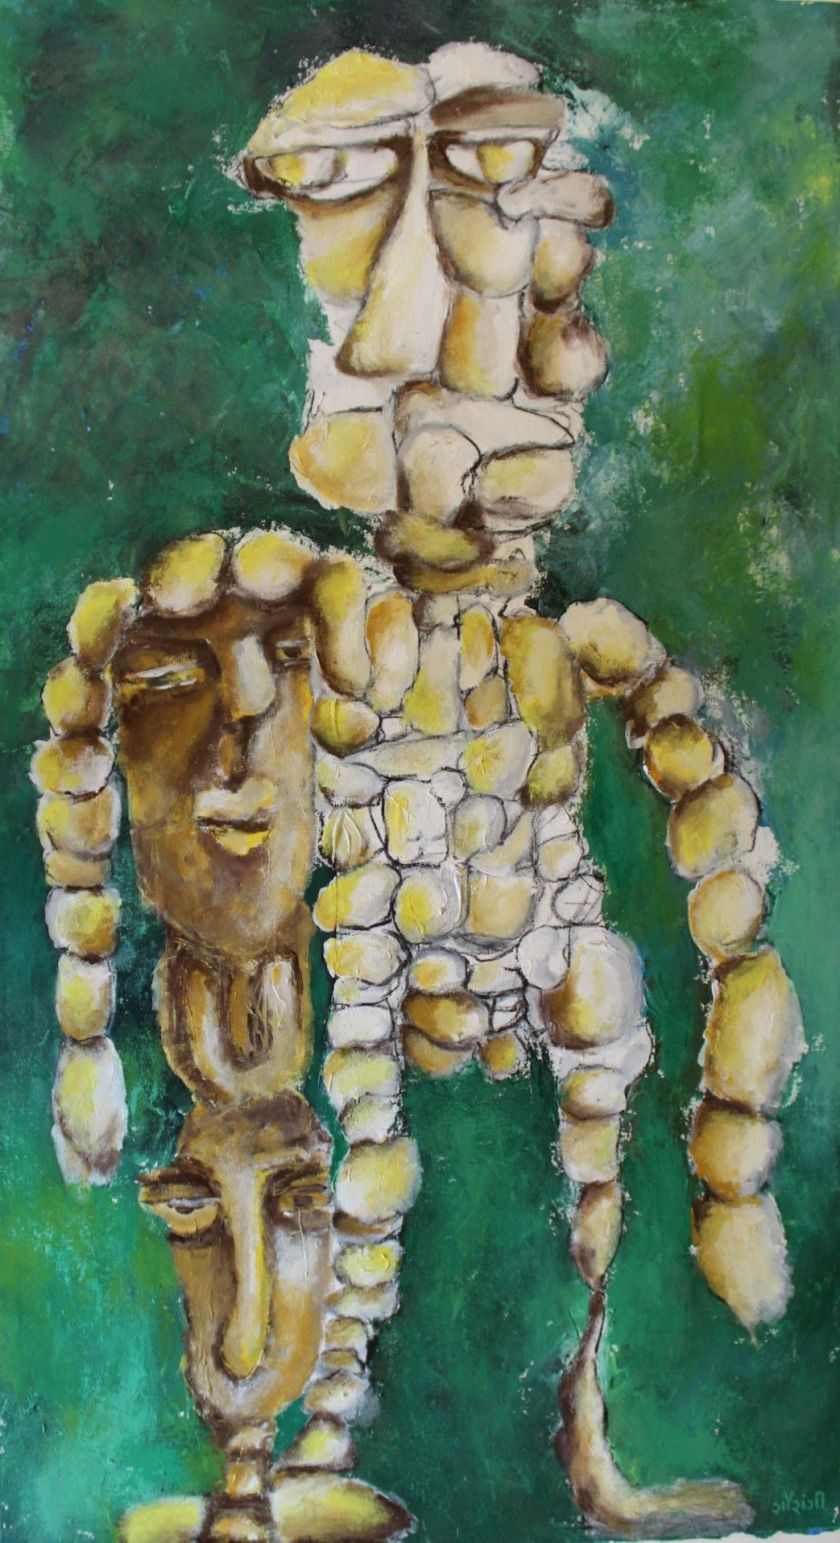 Title: The need for validation is distressing Medium: Acrylic and charcoal on canvas Size: 23.5 * 43.5 inches / 23.5*110.49 cm (2018) Artist: gaurangi mehta shah